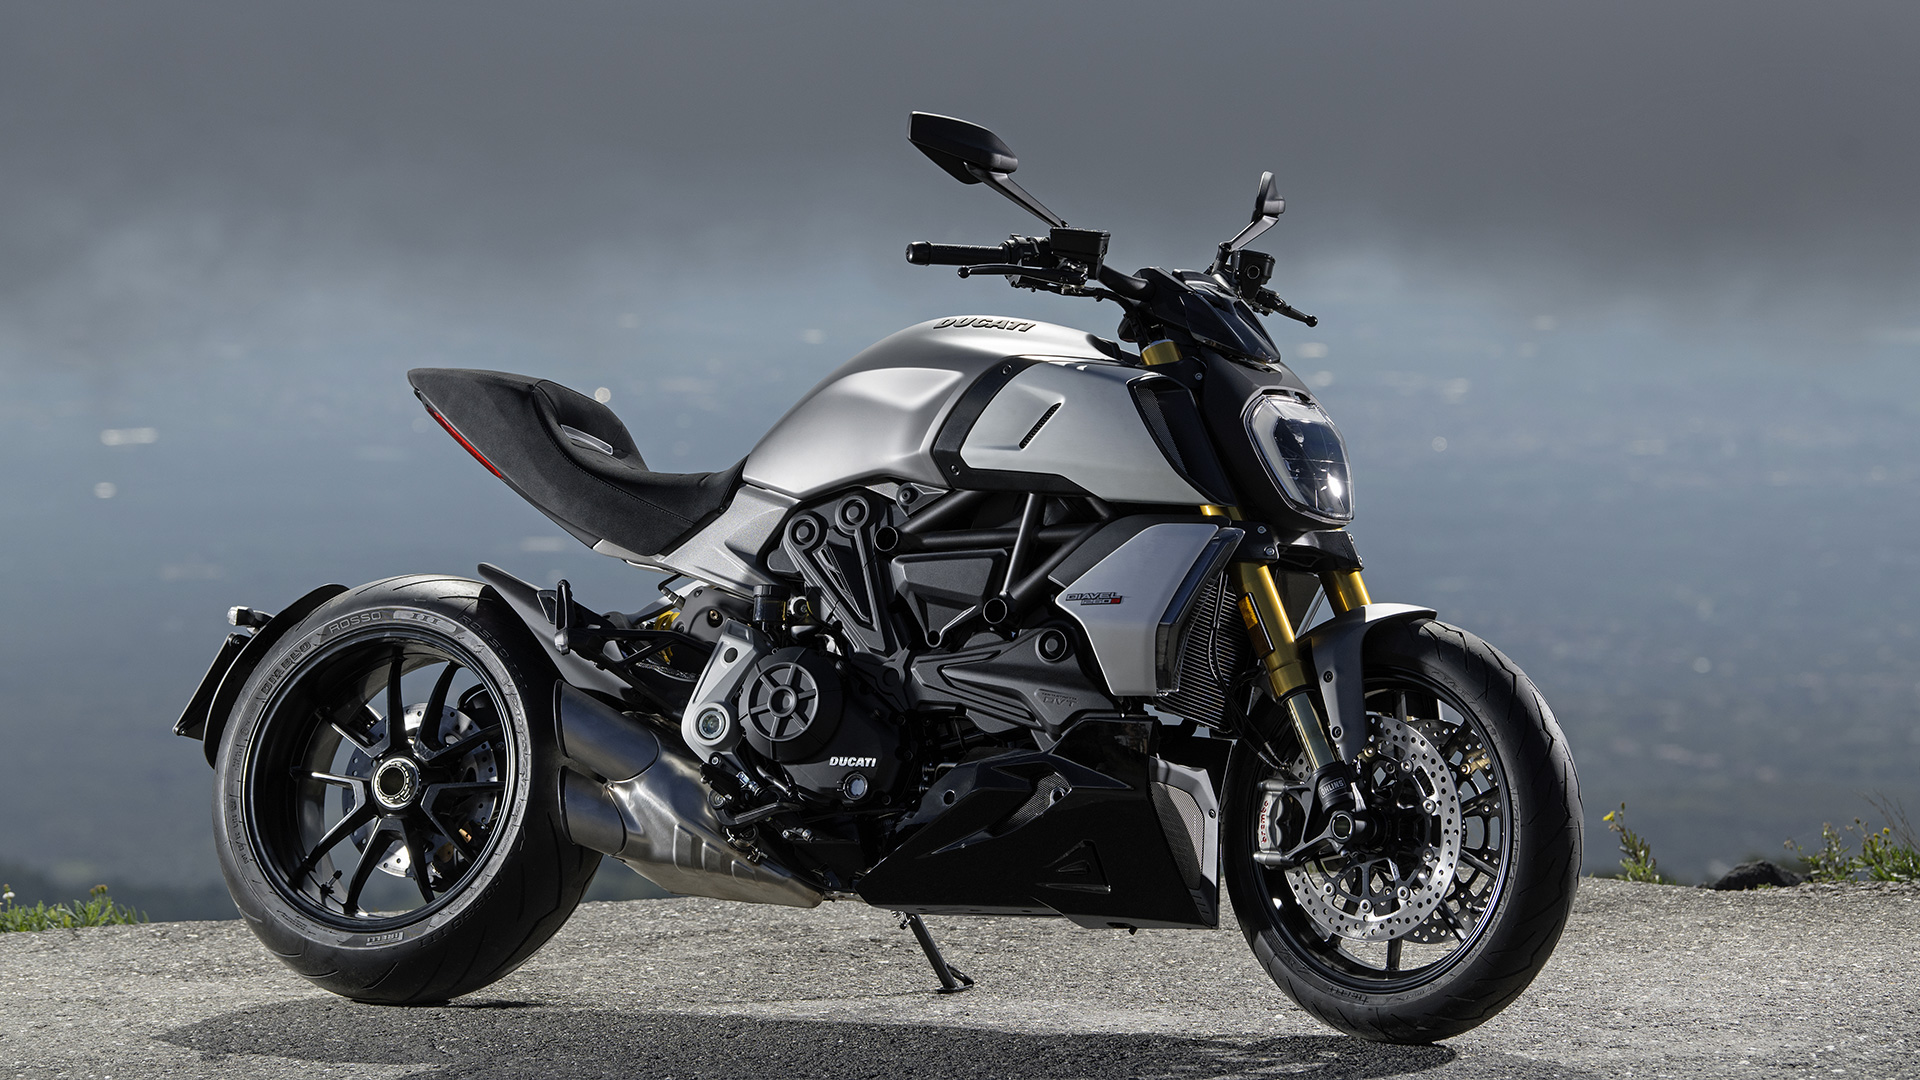 New Ducati Diavel 1260 The Maxi Naked Powerful And Muscular